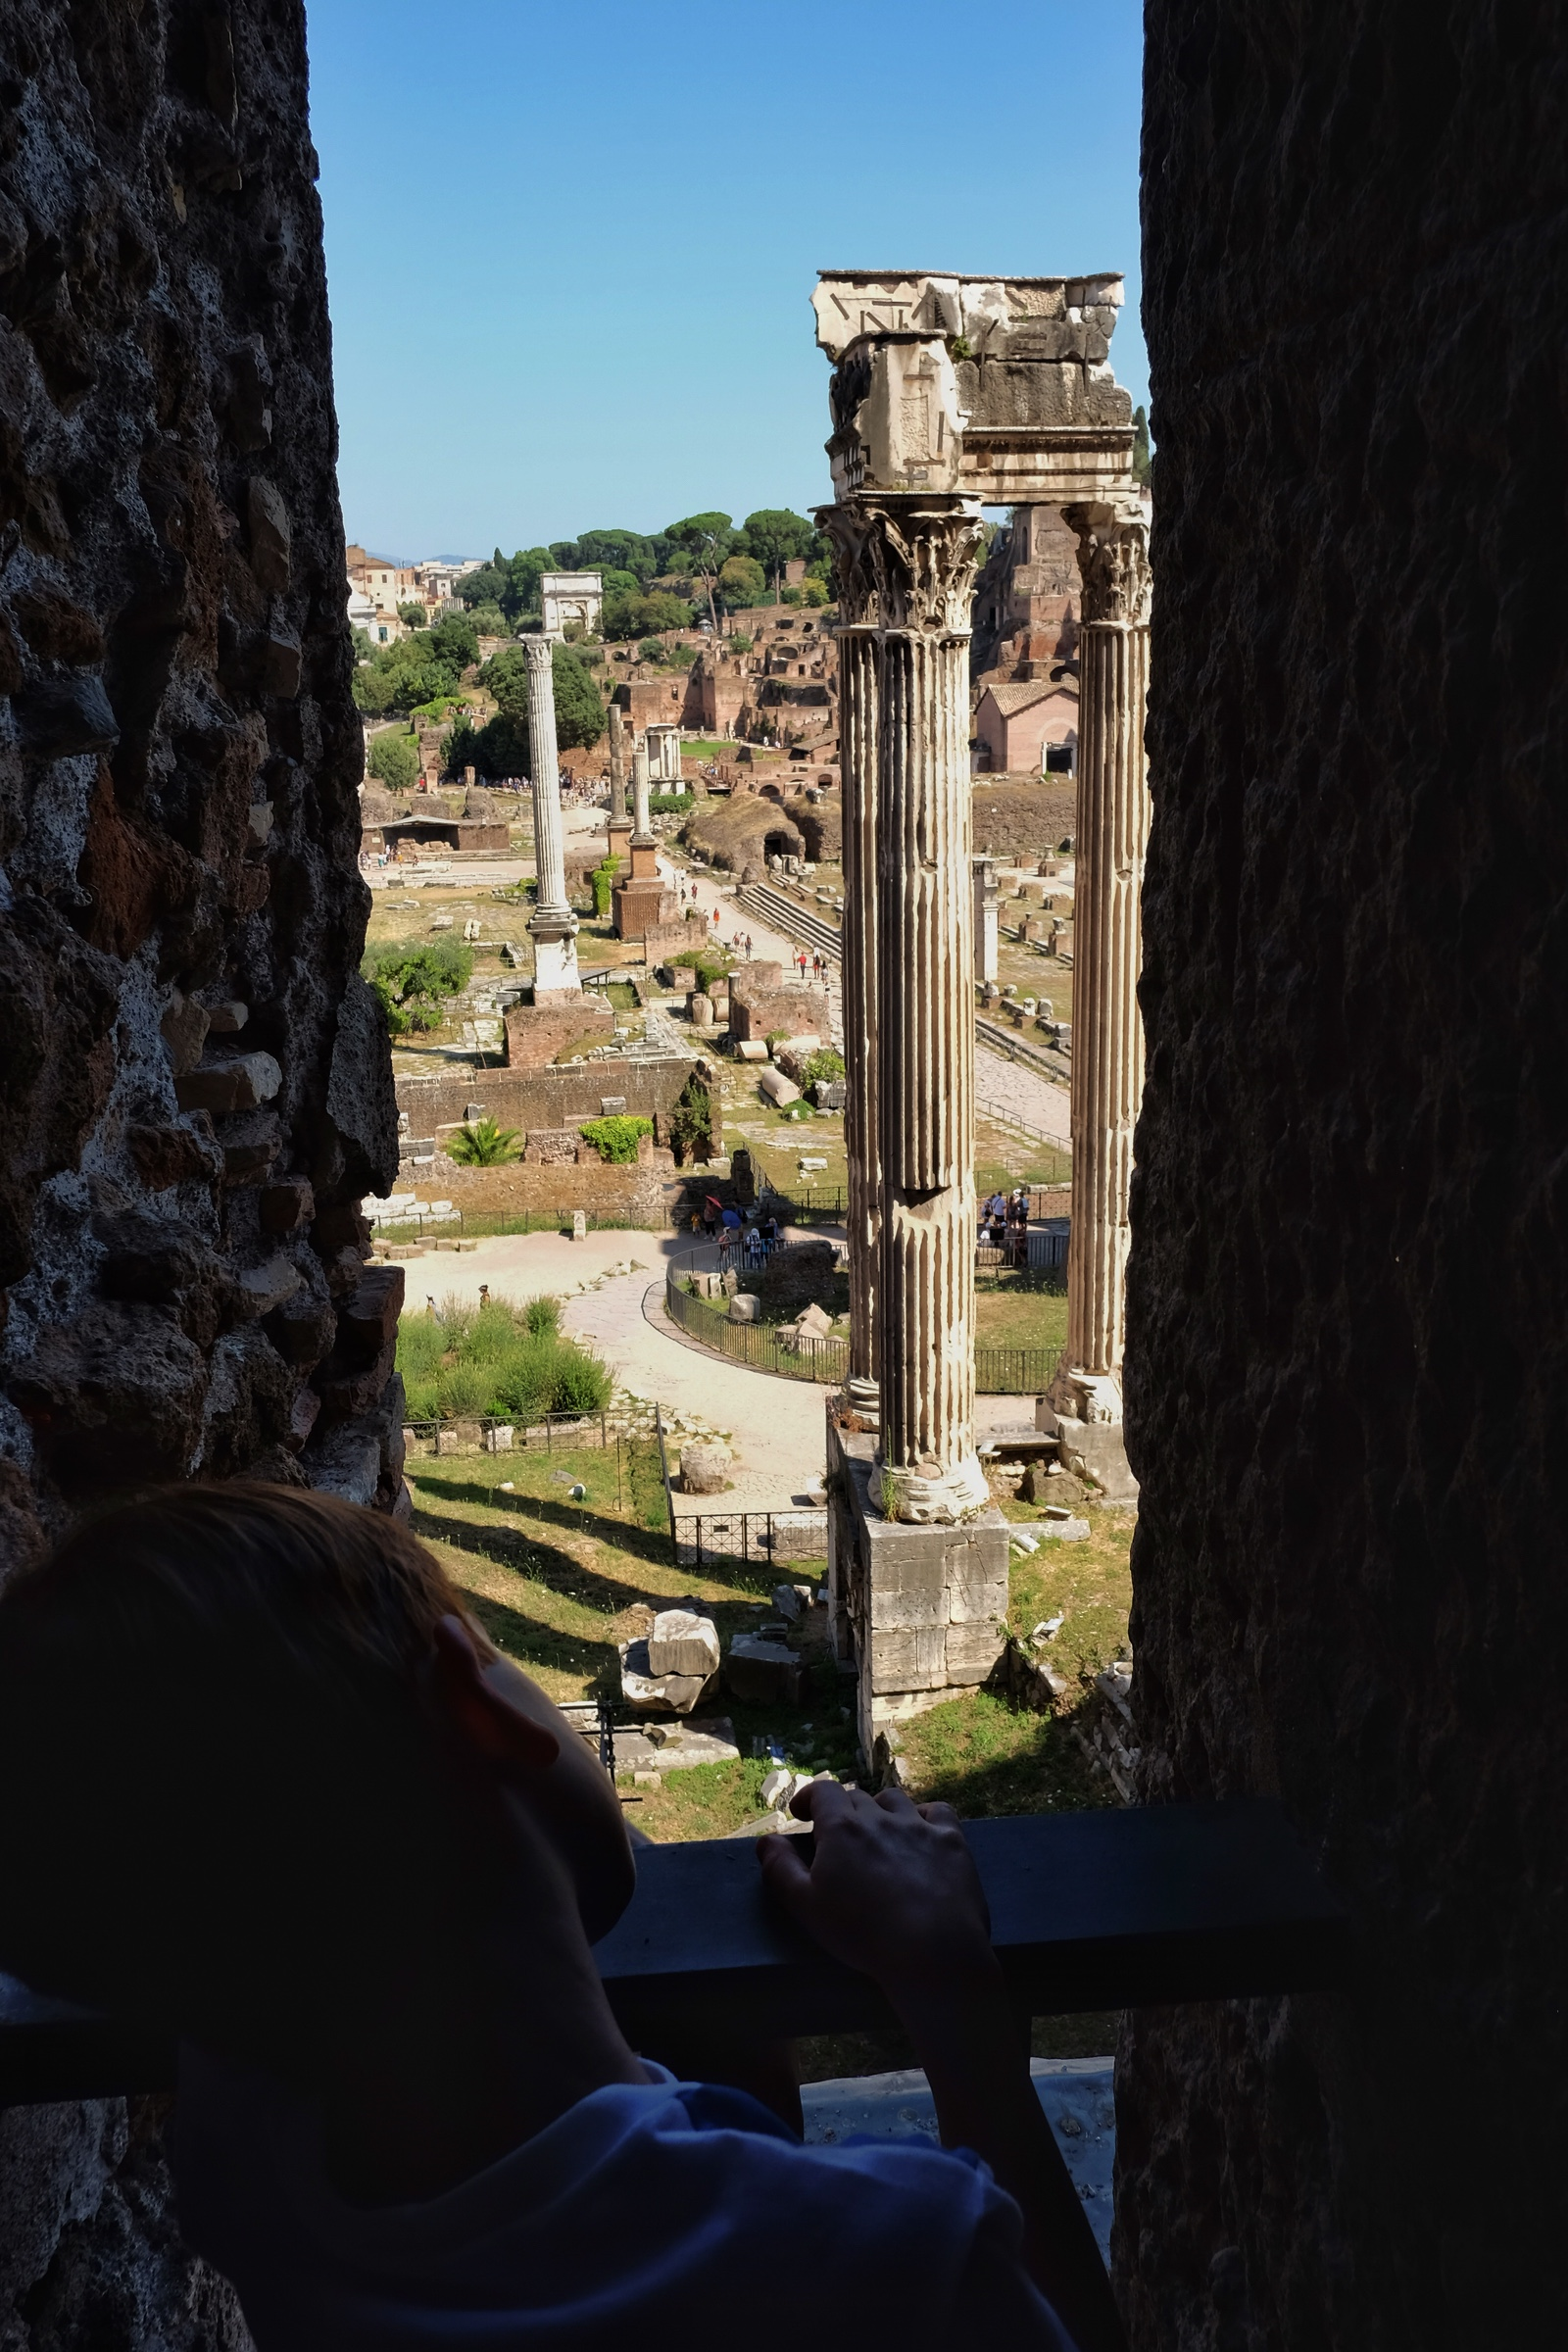 Rowan looking down on the Roman Forum from the Capitolini Museums.